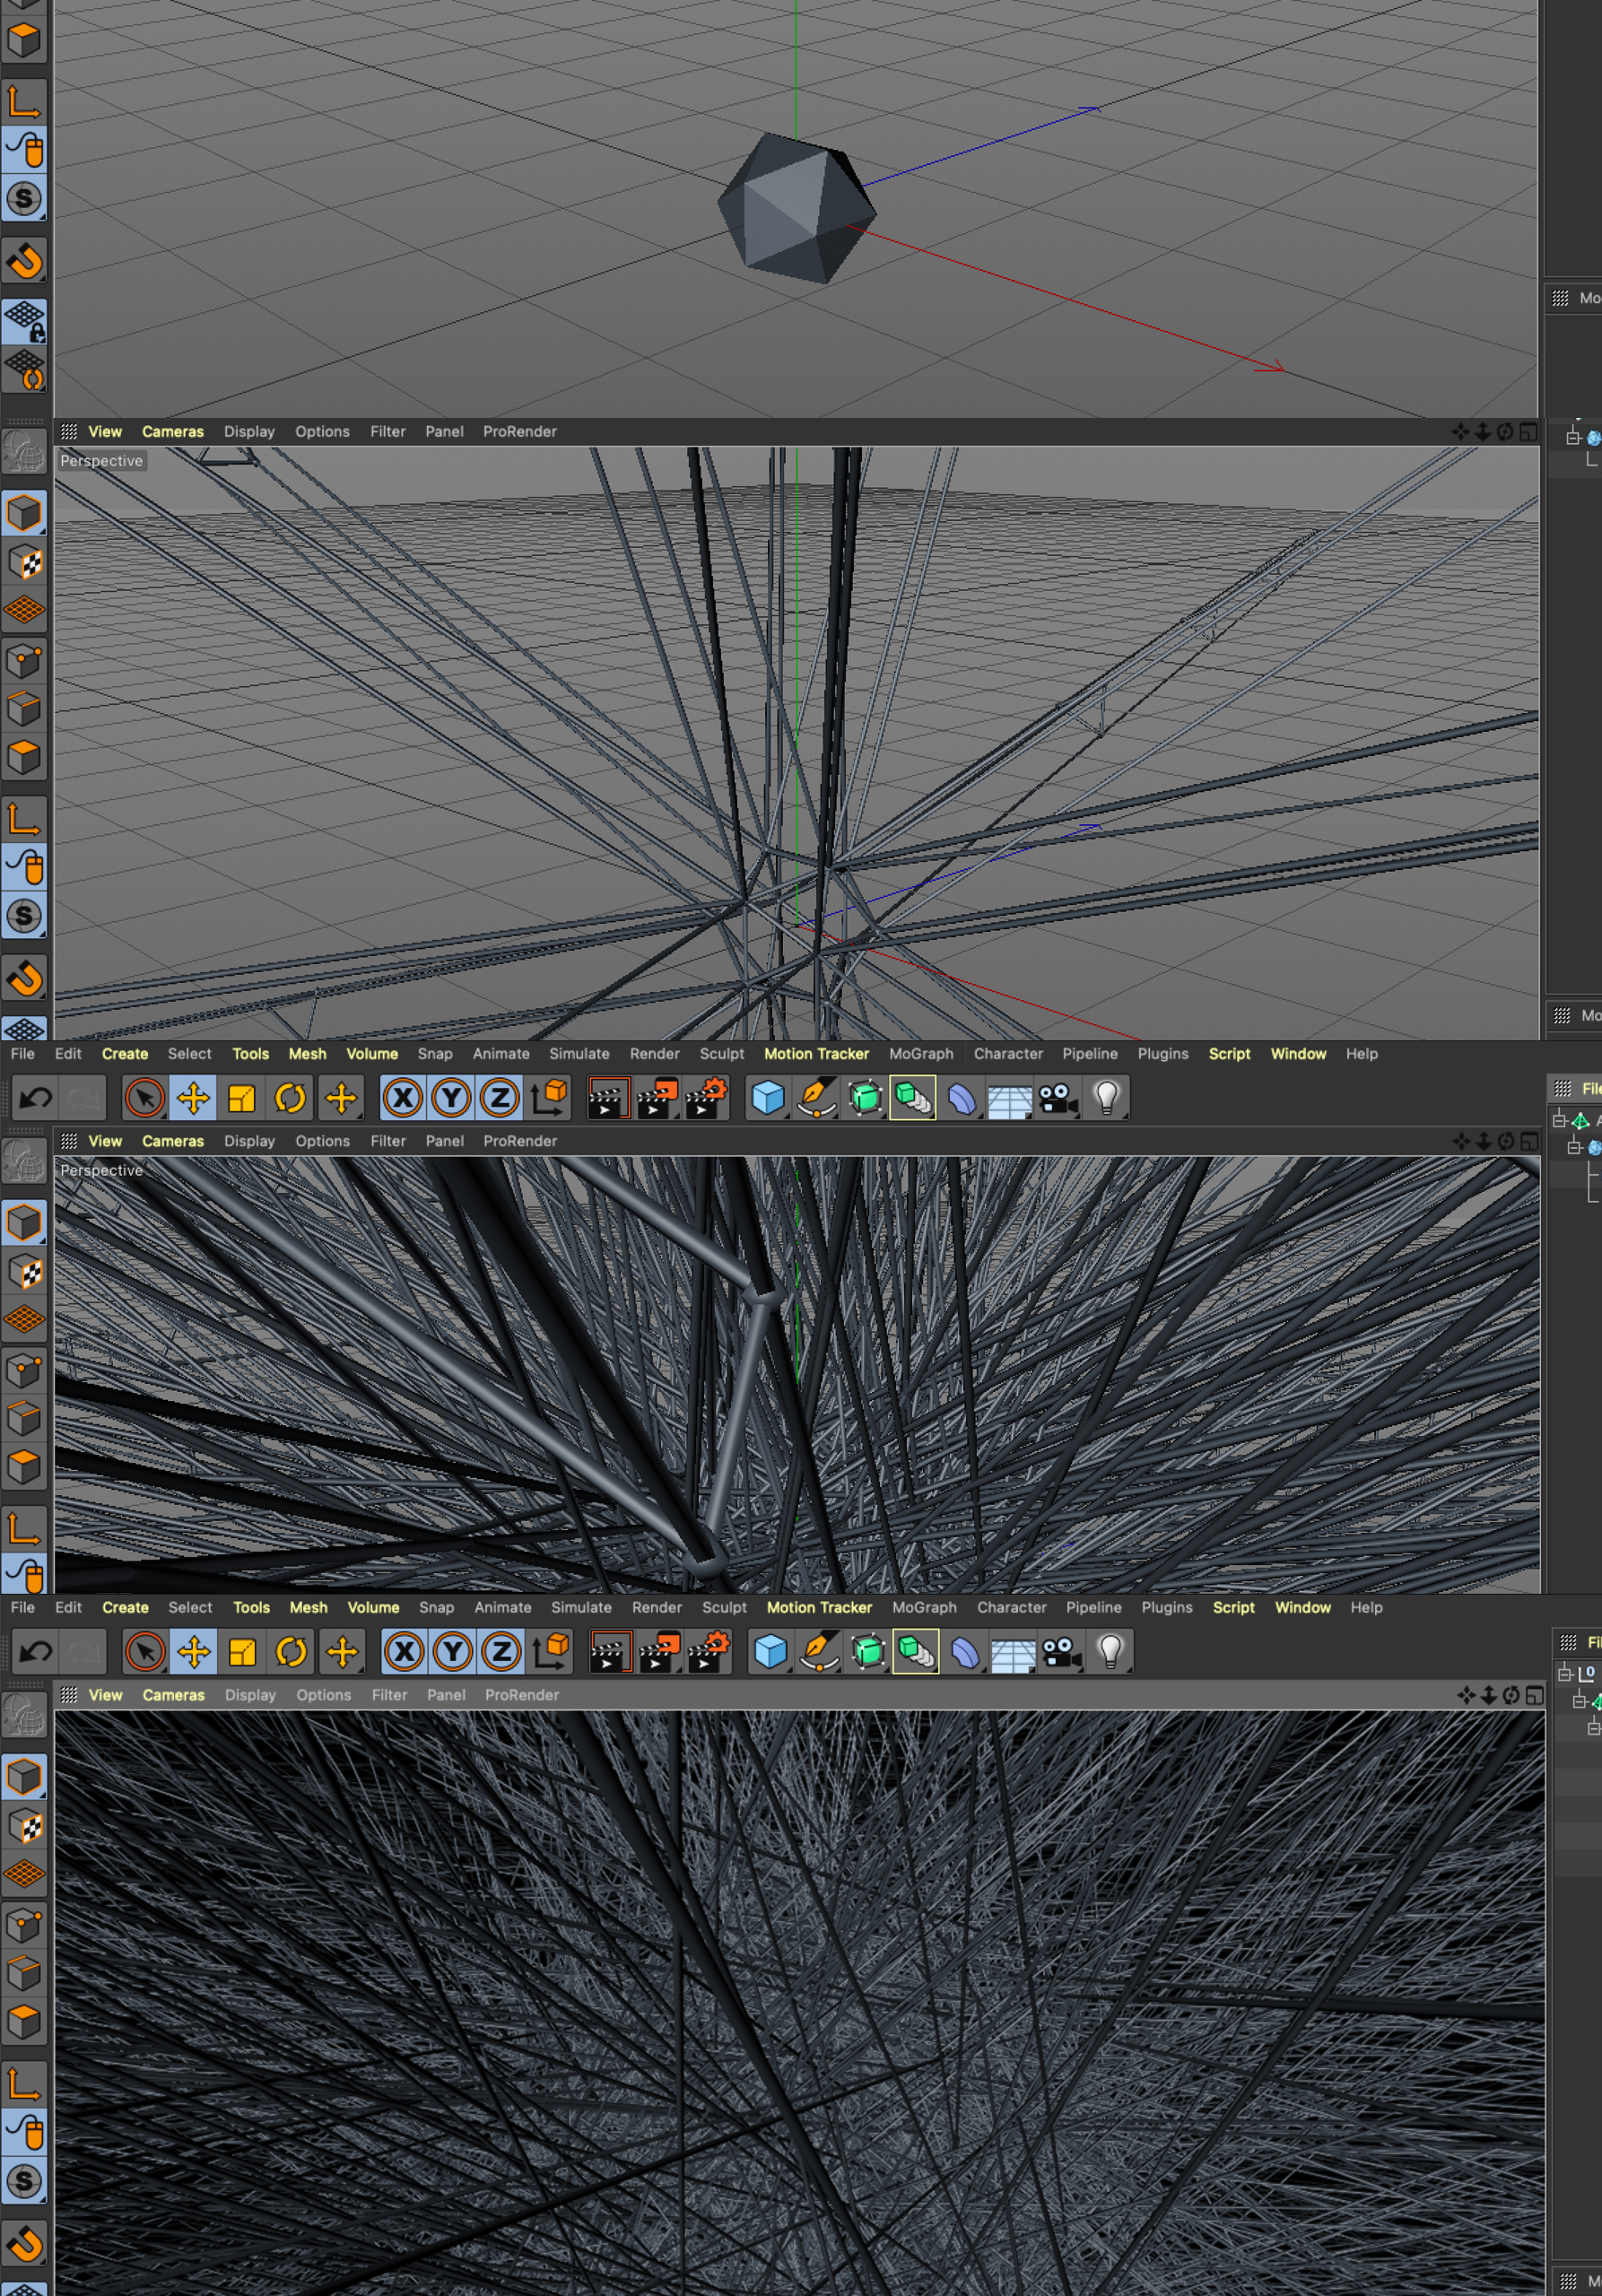 Screen shots of different steps in Cinema 4D making abstract pattern